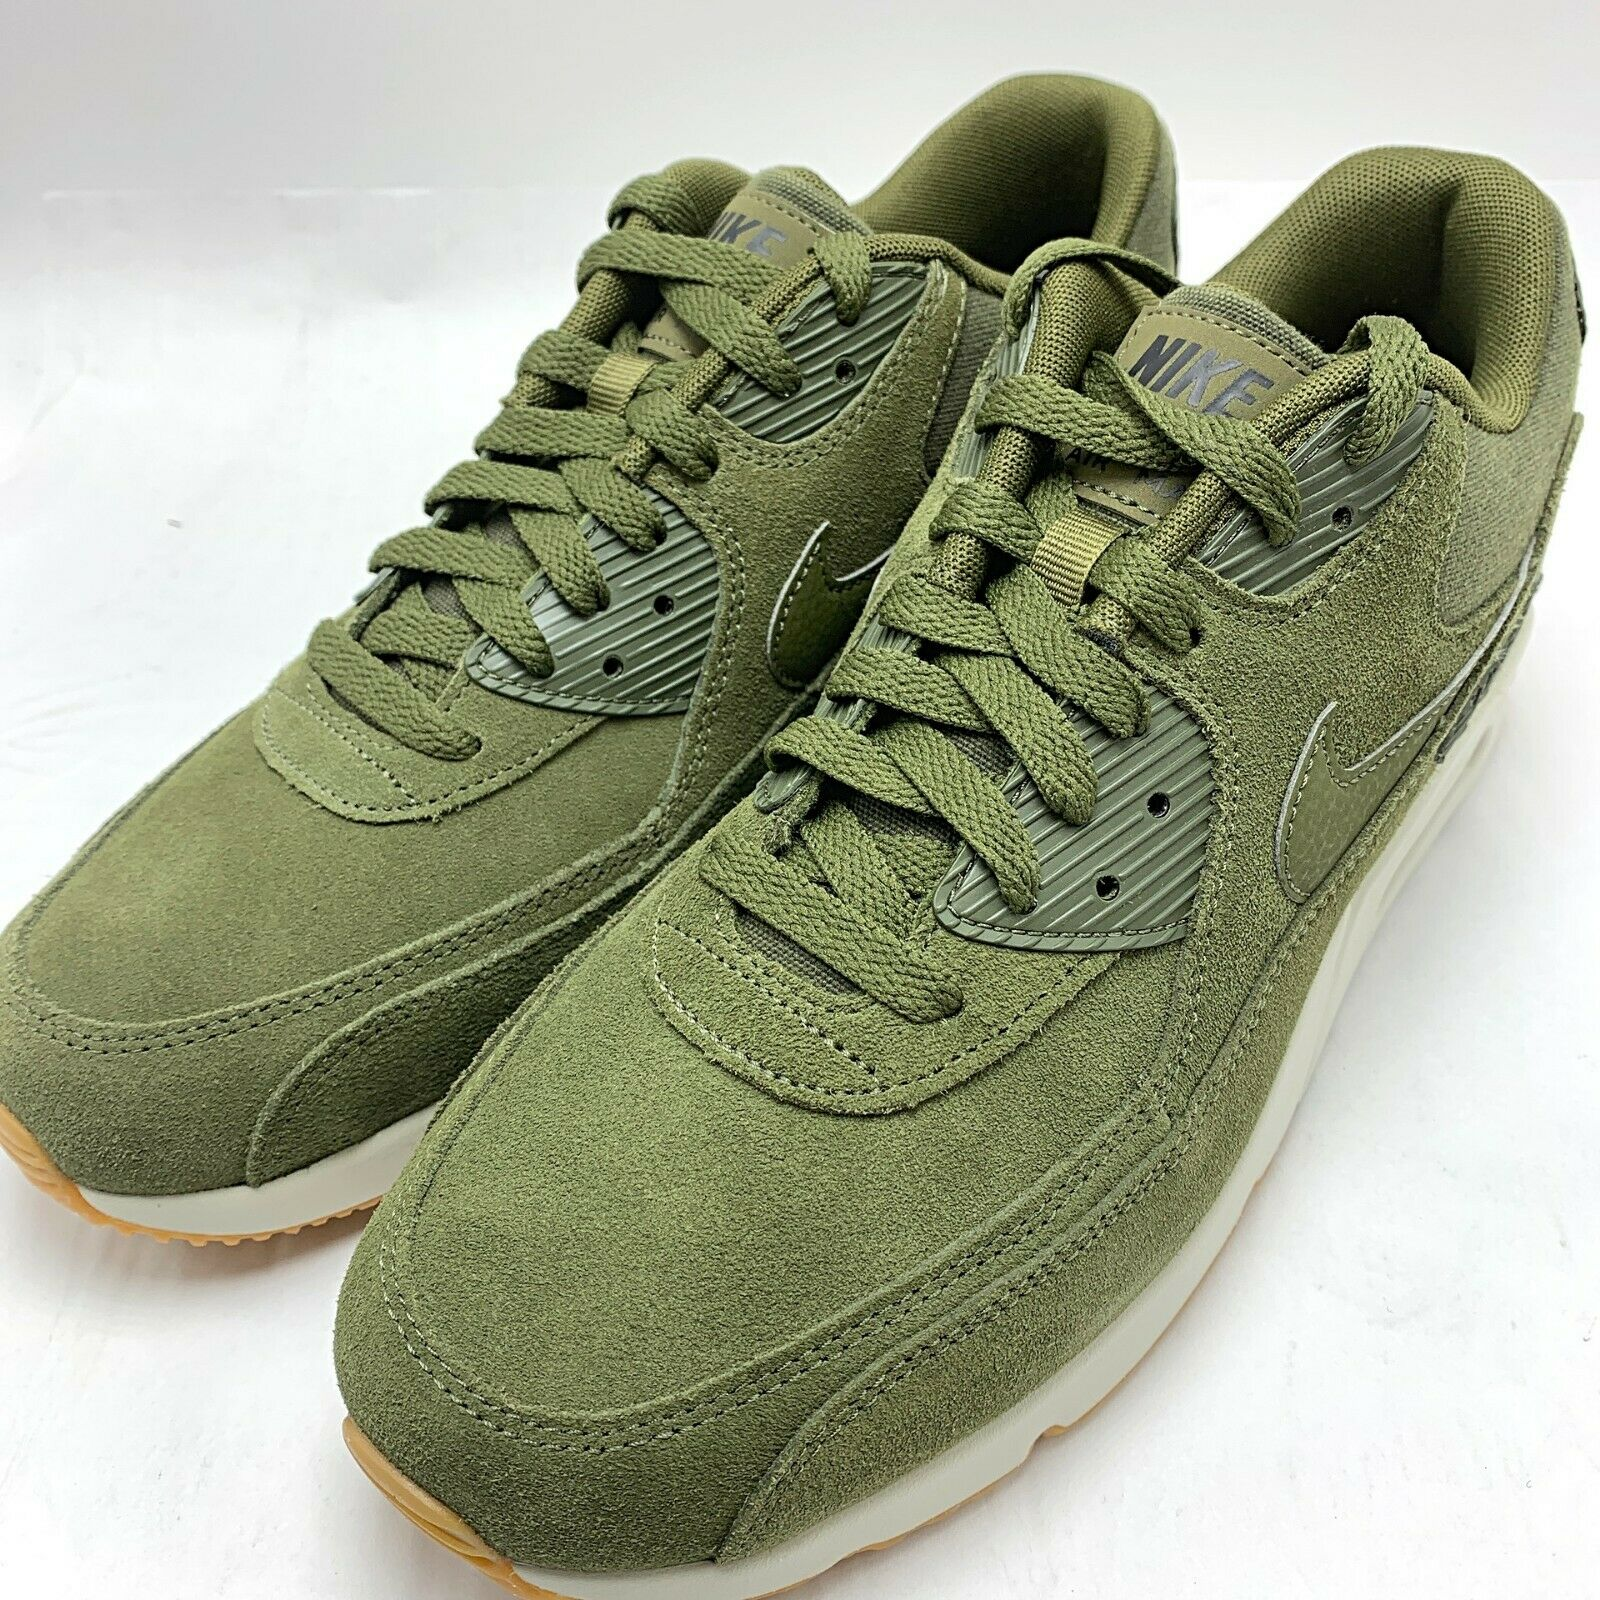 Nike Air Max 90 Ultra 2.0 Ltr Mens 924447 301 Olive Canvas Gum Shoes Size 9.5